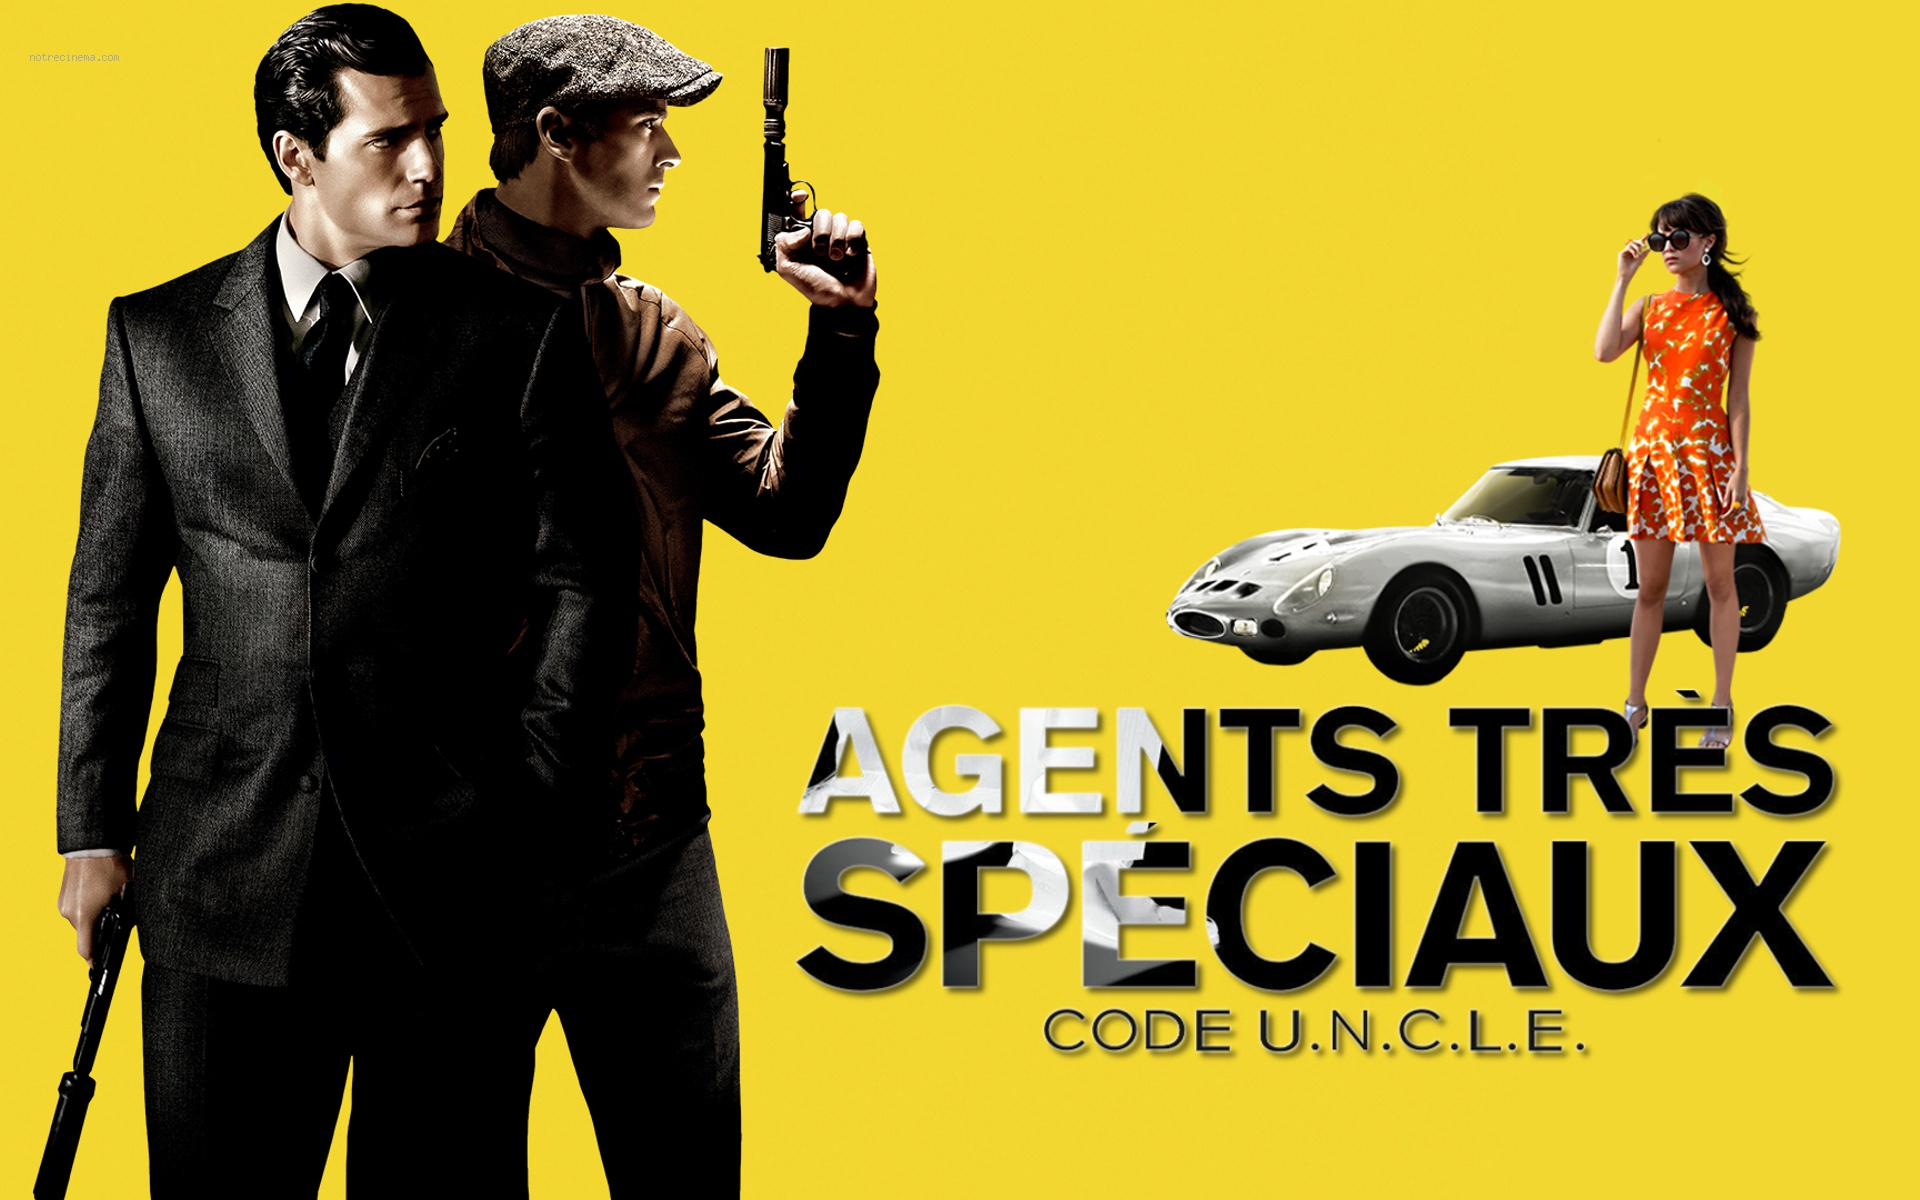 Agents trs spciaux Code UNCLE The Man from UNCLE 1920x1200